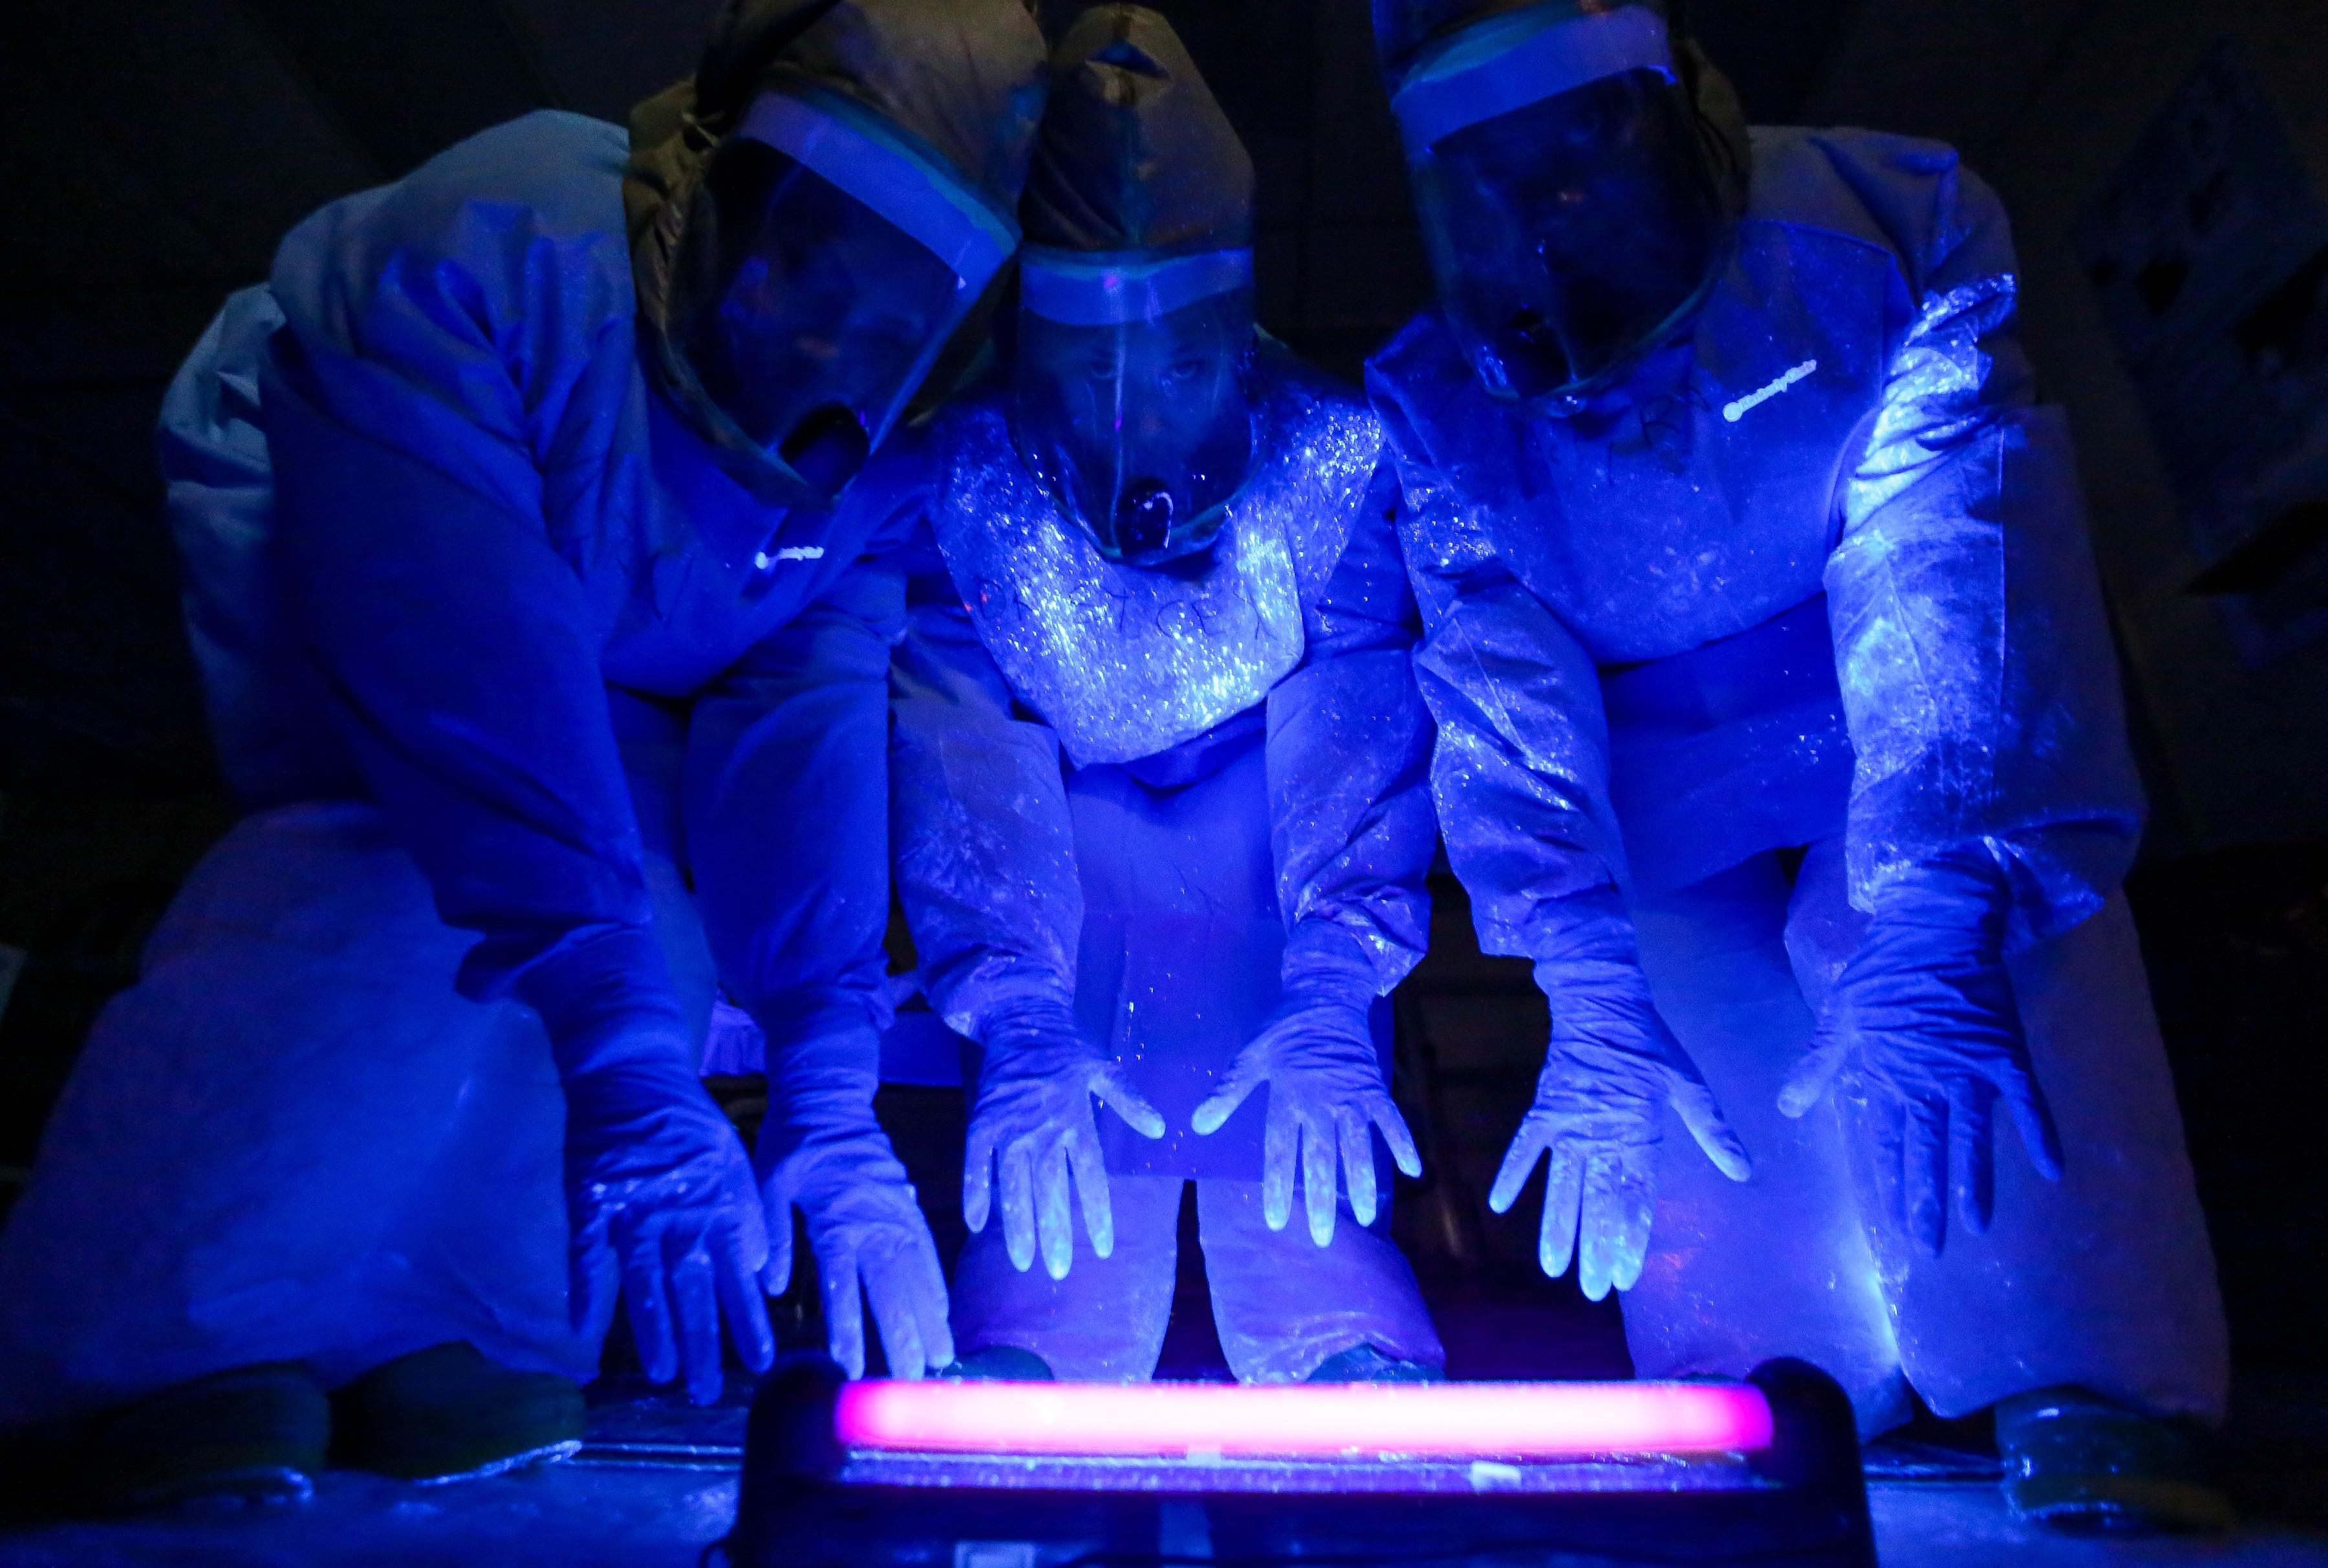 A black fluorescent light shows where simulated bodily fluid containing a mock Ebola virus landed on a care team's personal protective equipment, during a training exercise at Madigan Army Medical Center's Andersen Simulation Center, Nov. 6, 2014